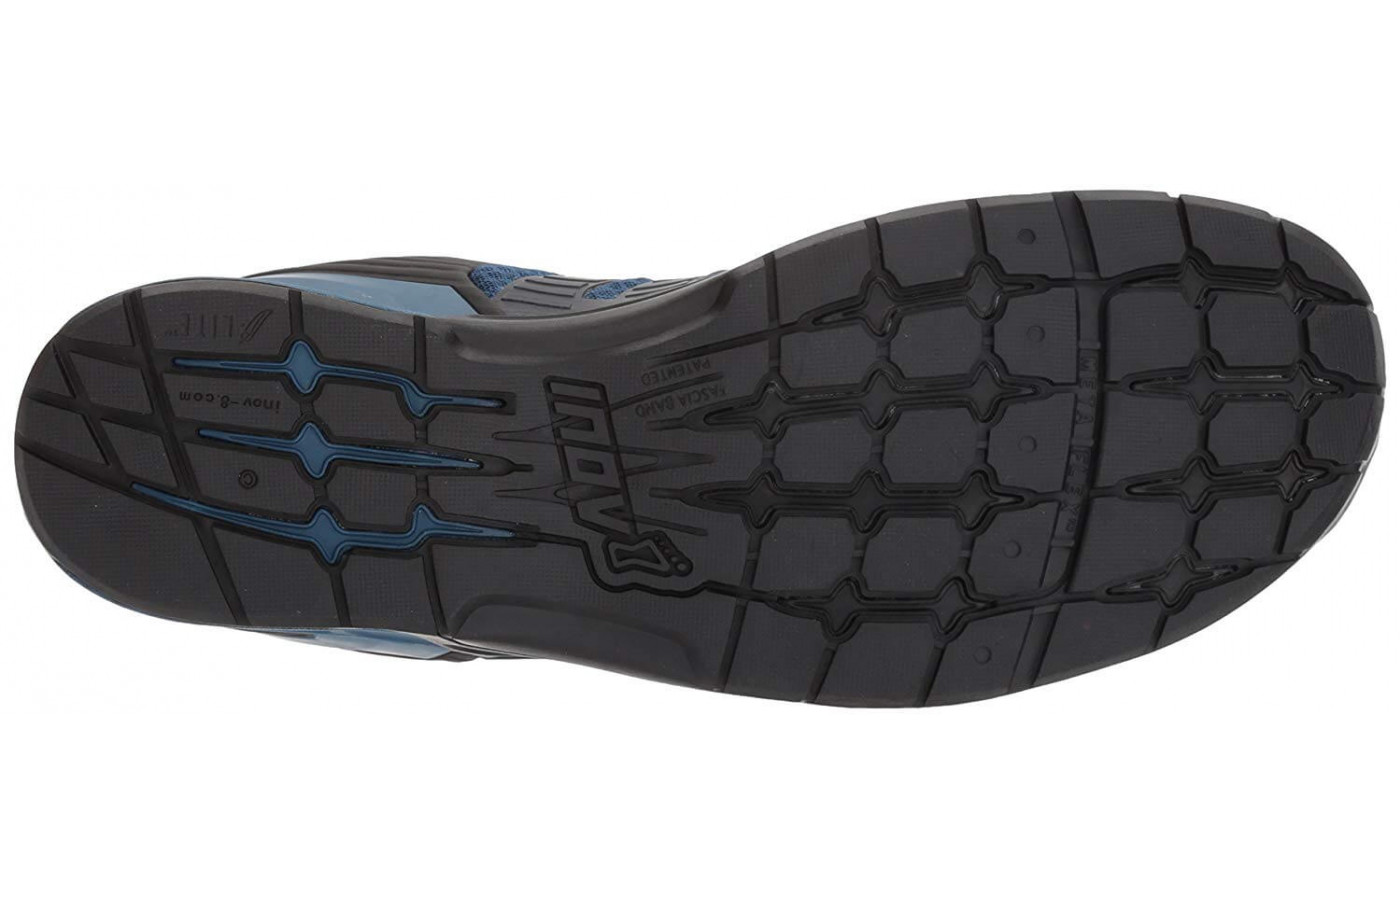 Sticky Grip gives the F-Lite 260 even greater traction